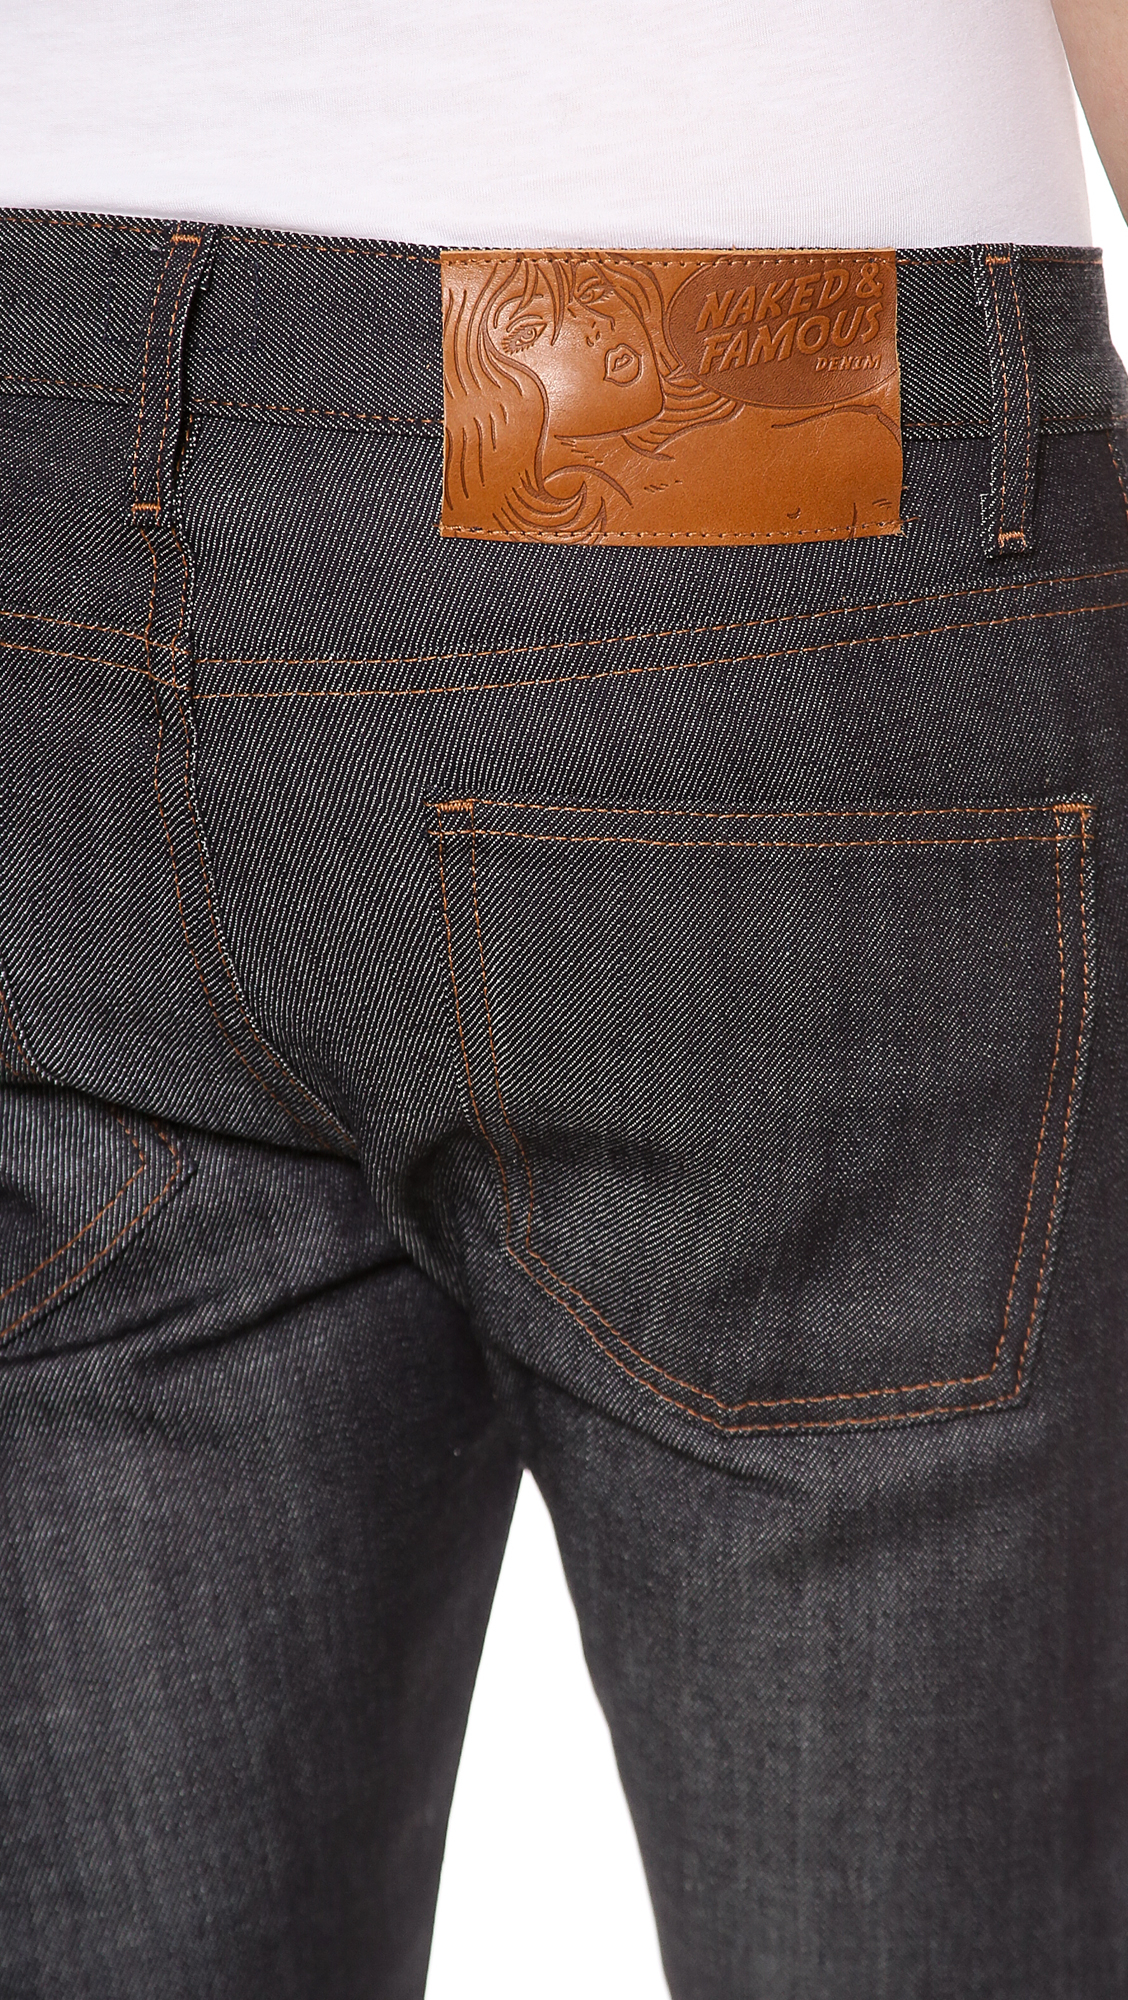 Naked & famous Super Skinny Guy Stretch Selvedge Jeans in ...